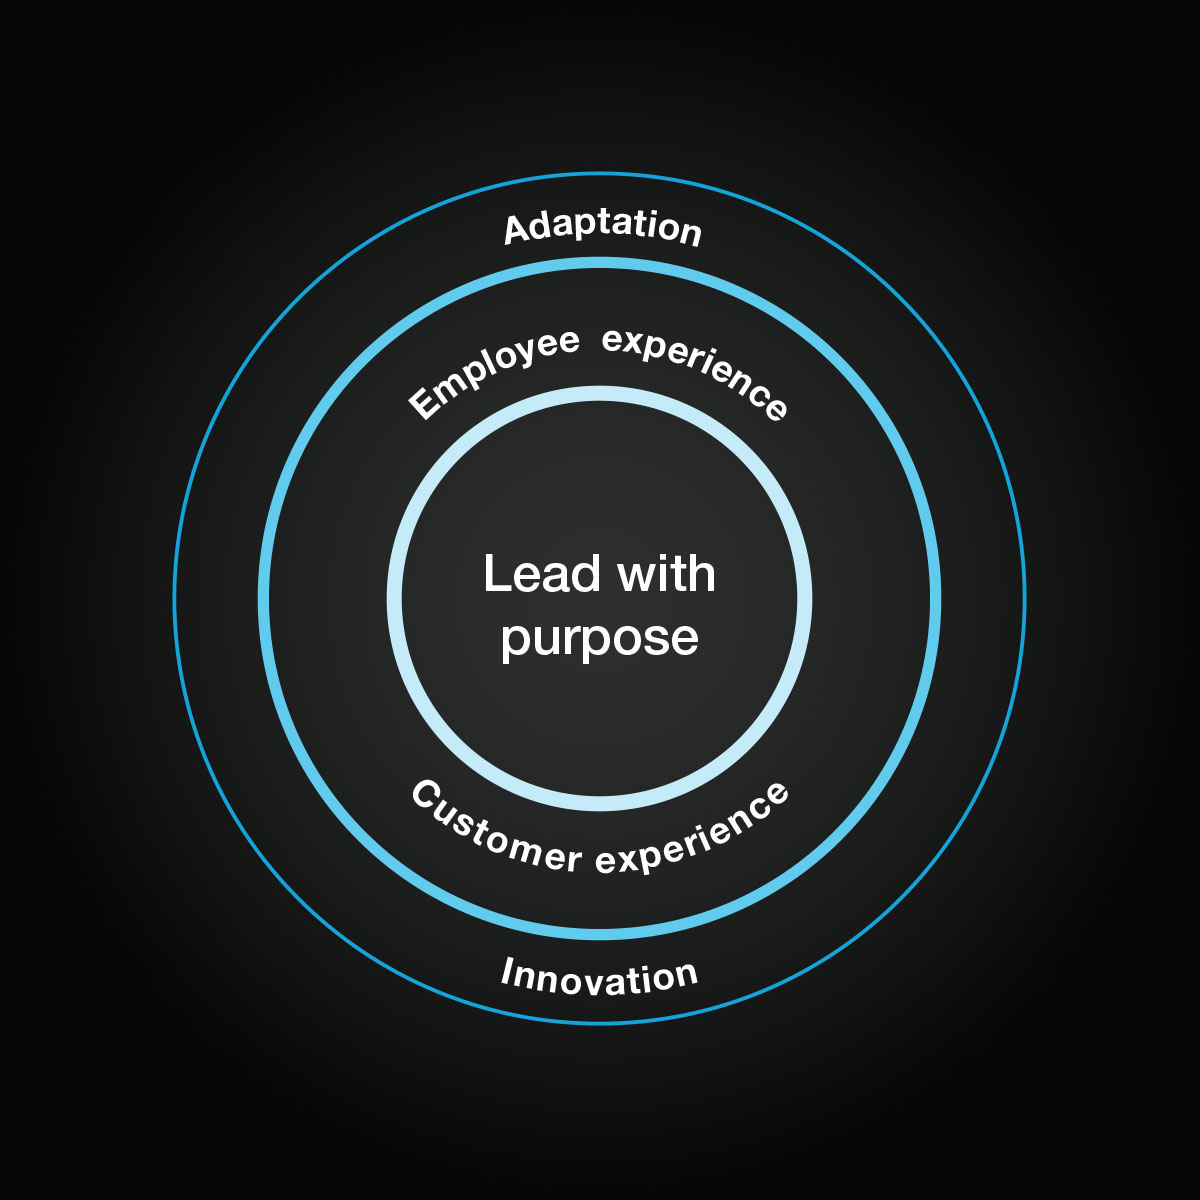 A graphic of lead with purpose adaptive framework produced. 3 concentric circles with text in between.